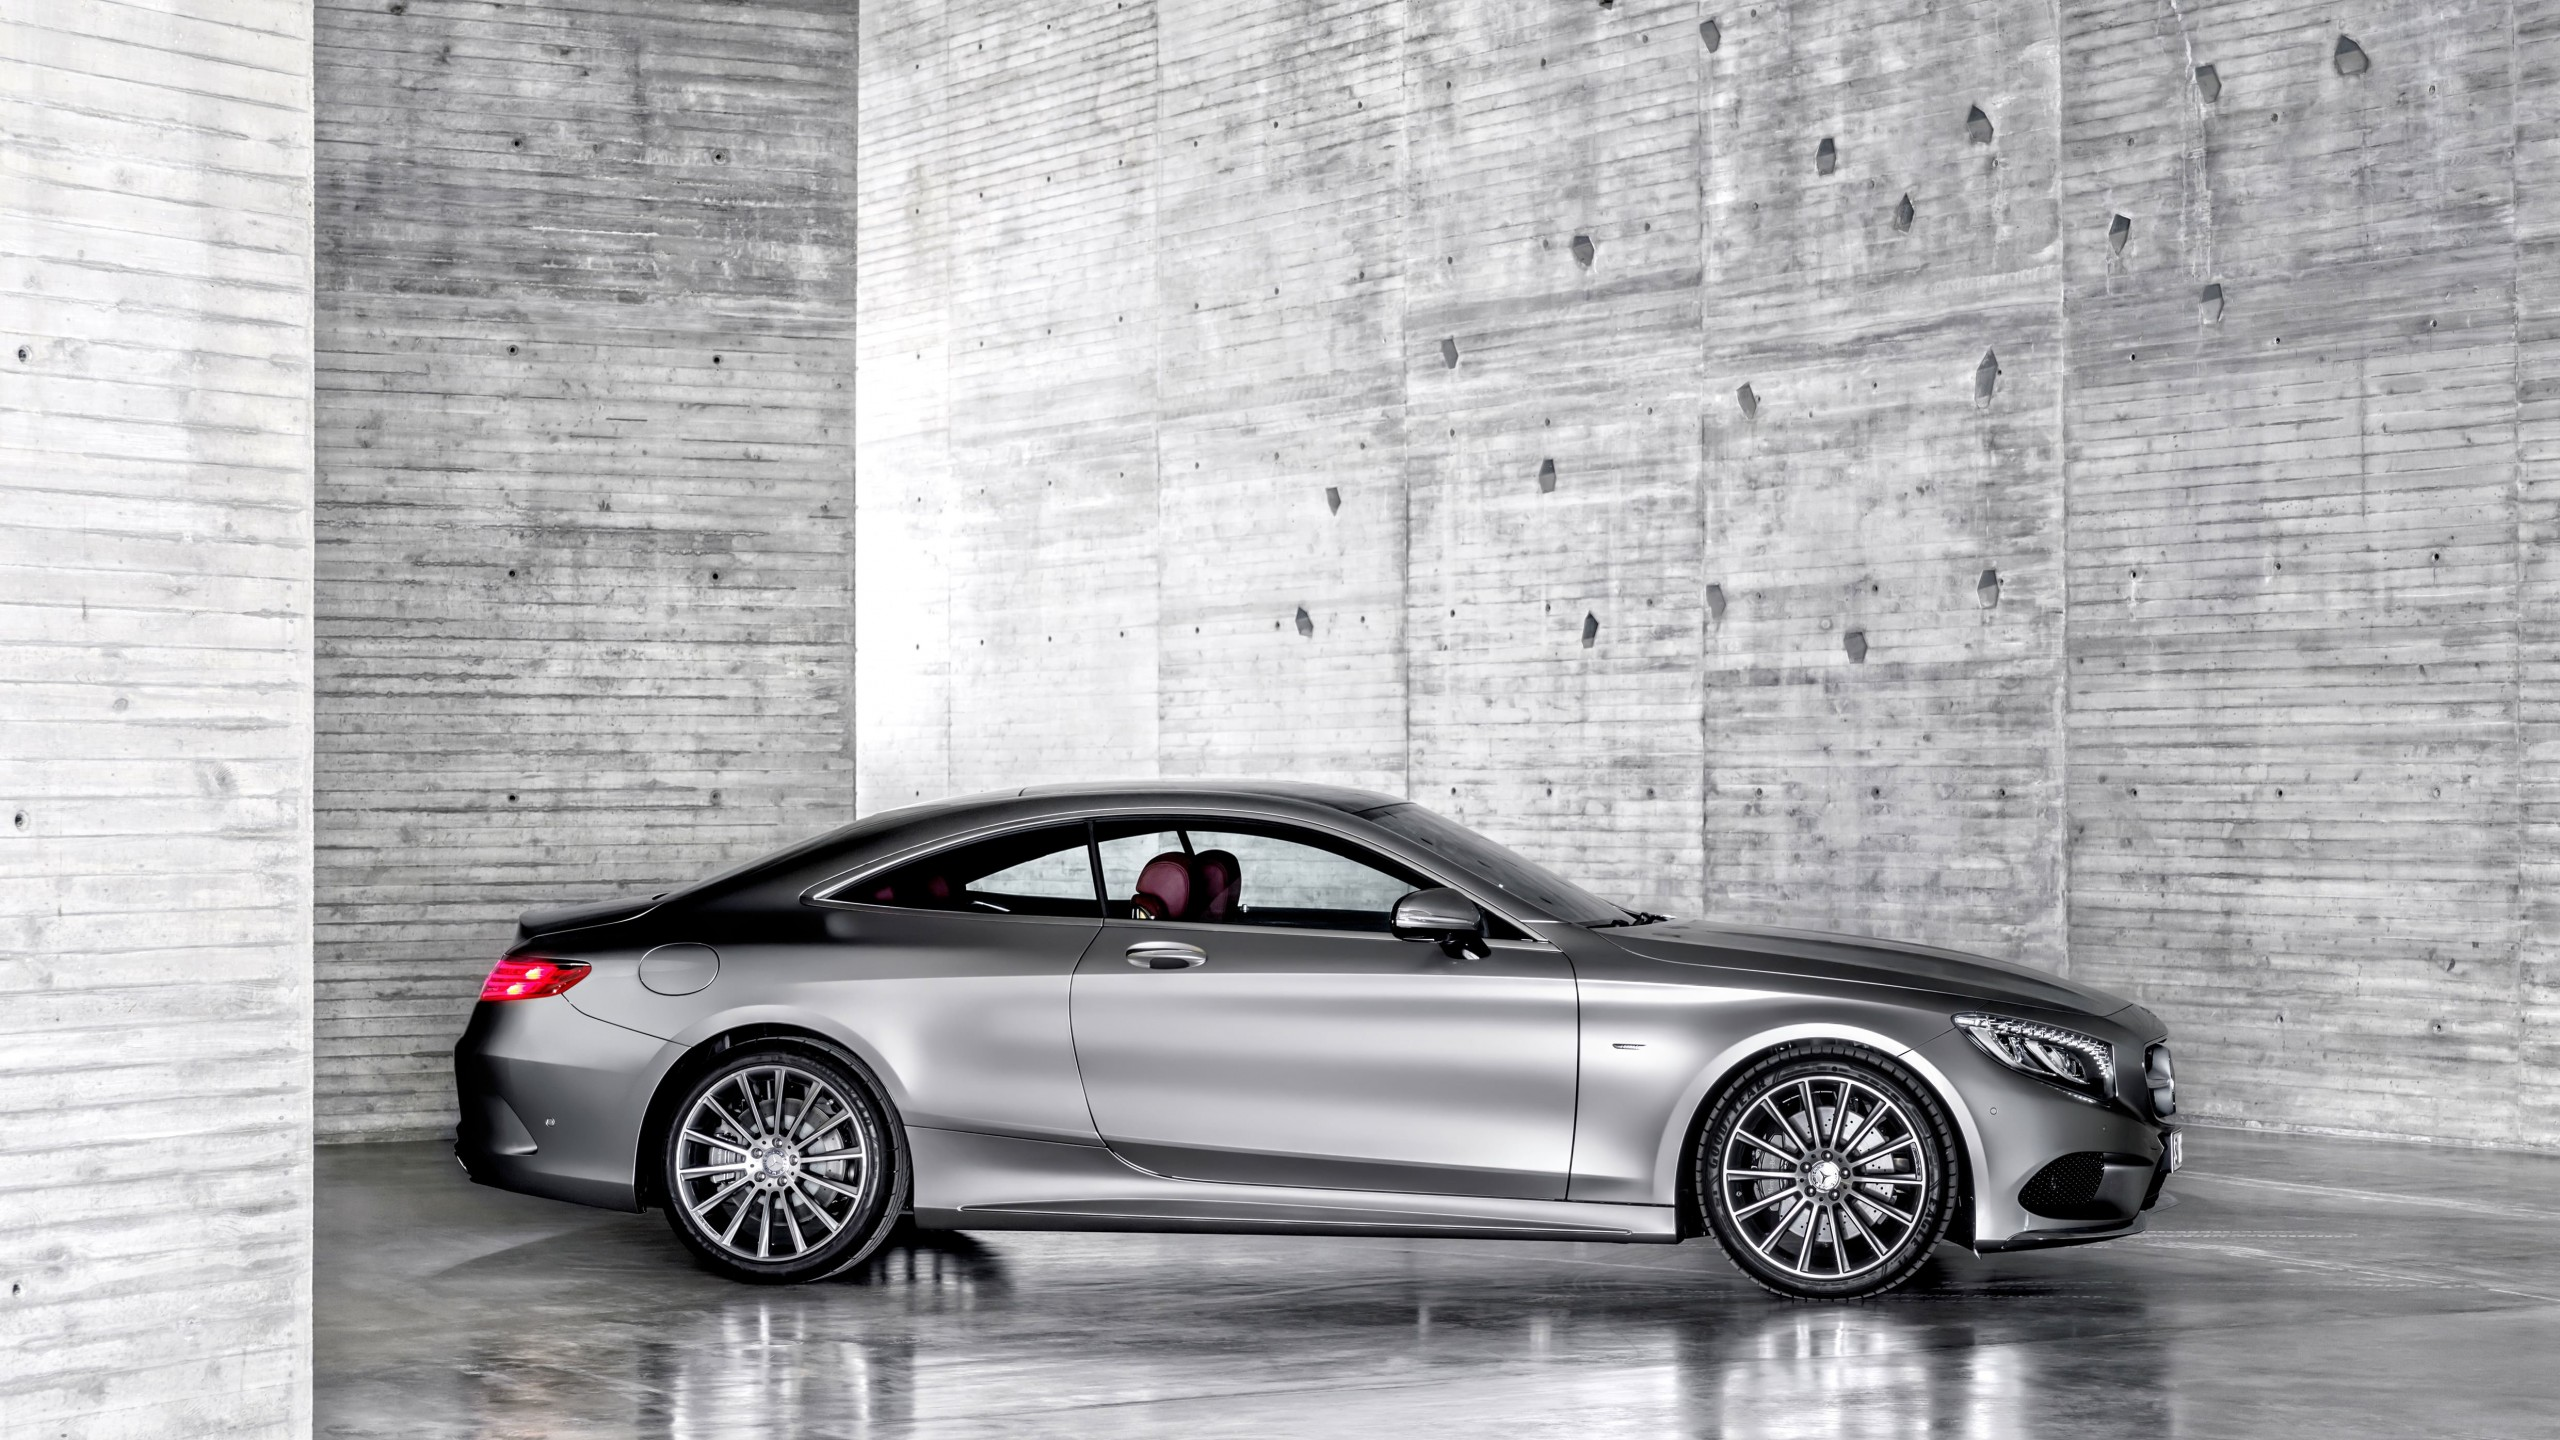 2015 Mercedes-Benz S-Class Coupe Wallpaper for Social Media YouTube Channel Art